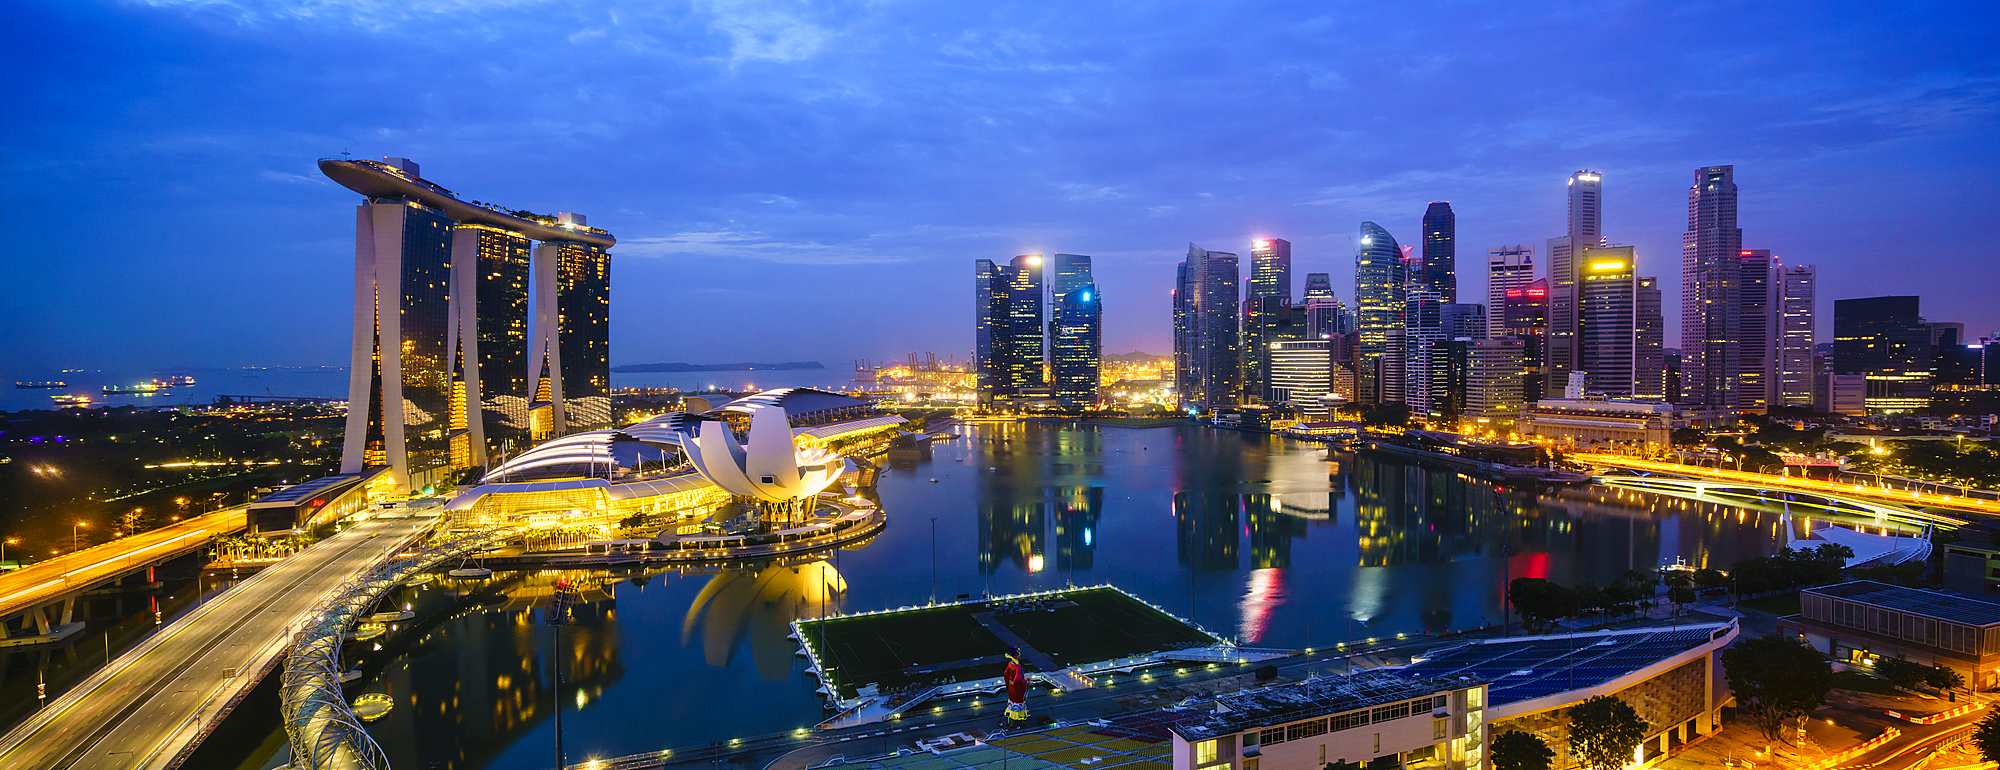 1226-82 ( Fraser Hall ) - The towers of the Central Business District and Marina Bay by night, Singapore